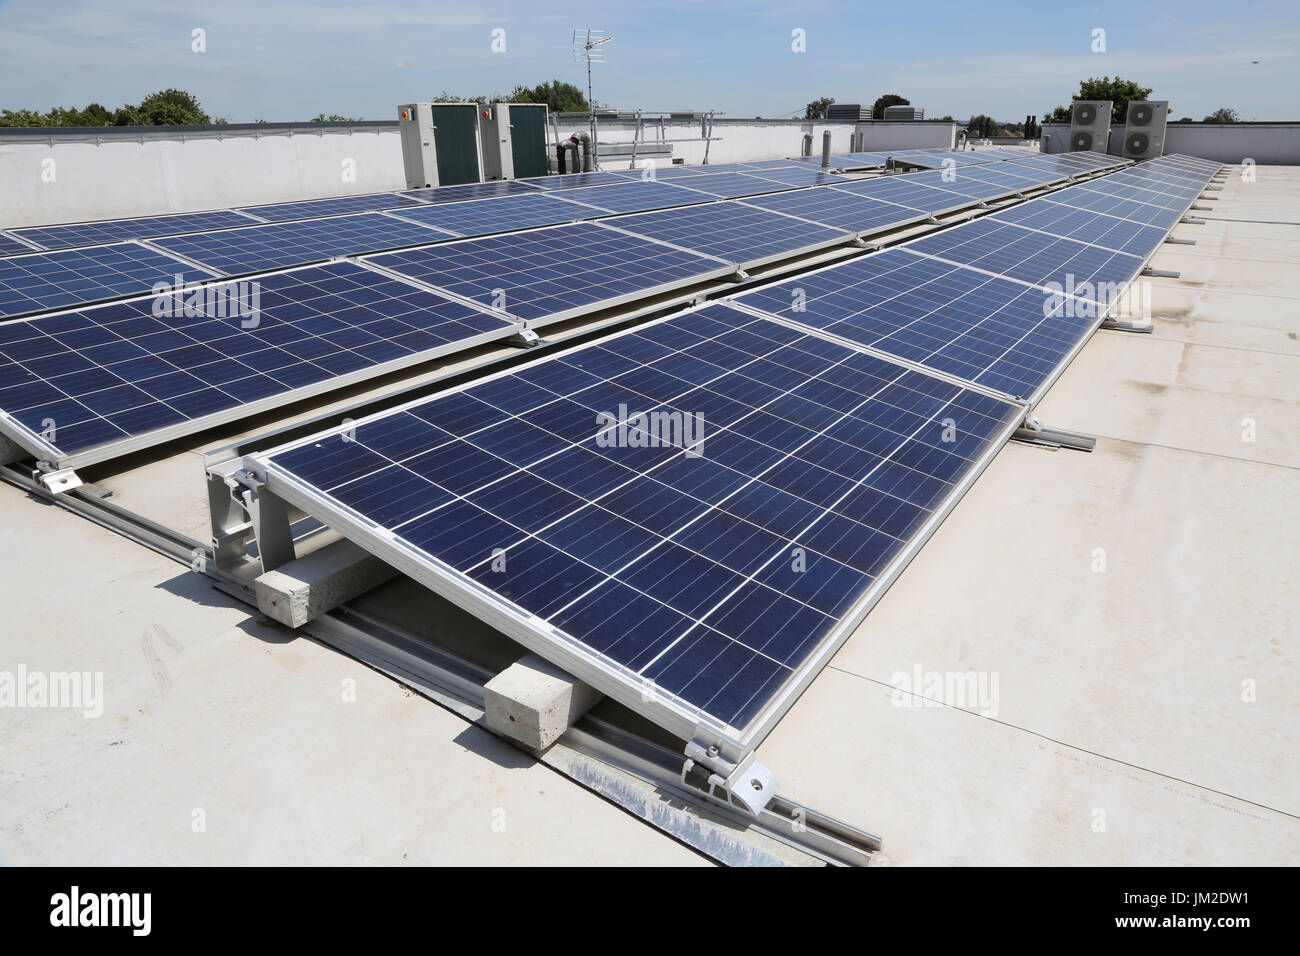 PV solar panels on the flat roof of a new primary school in Essex, UK Stock Photo